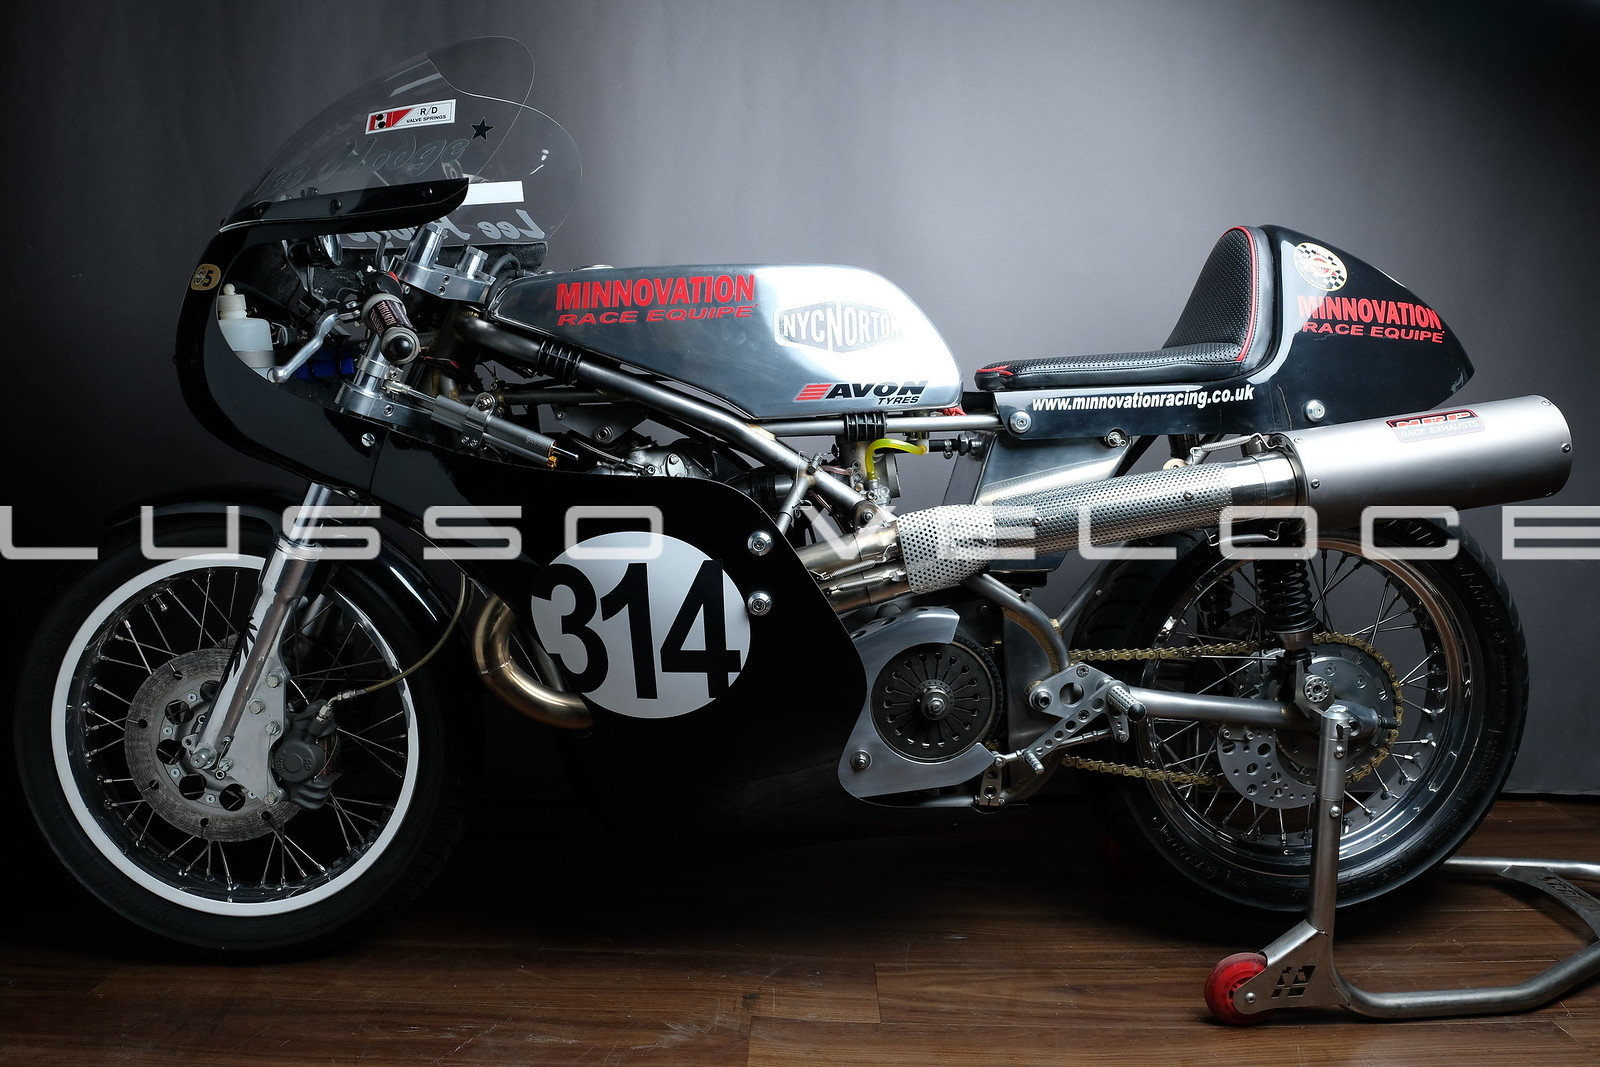 1972 Norton Seeley Commando 750 race bike For Sale (picture 2 of 20)